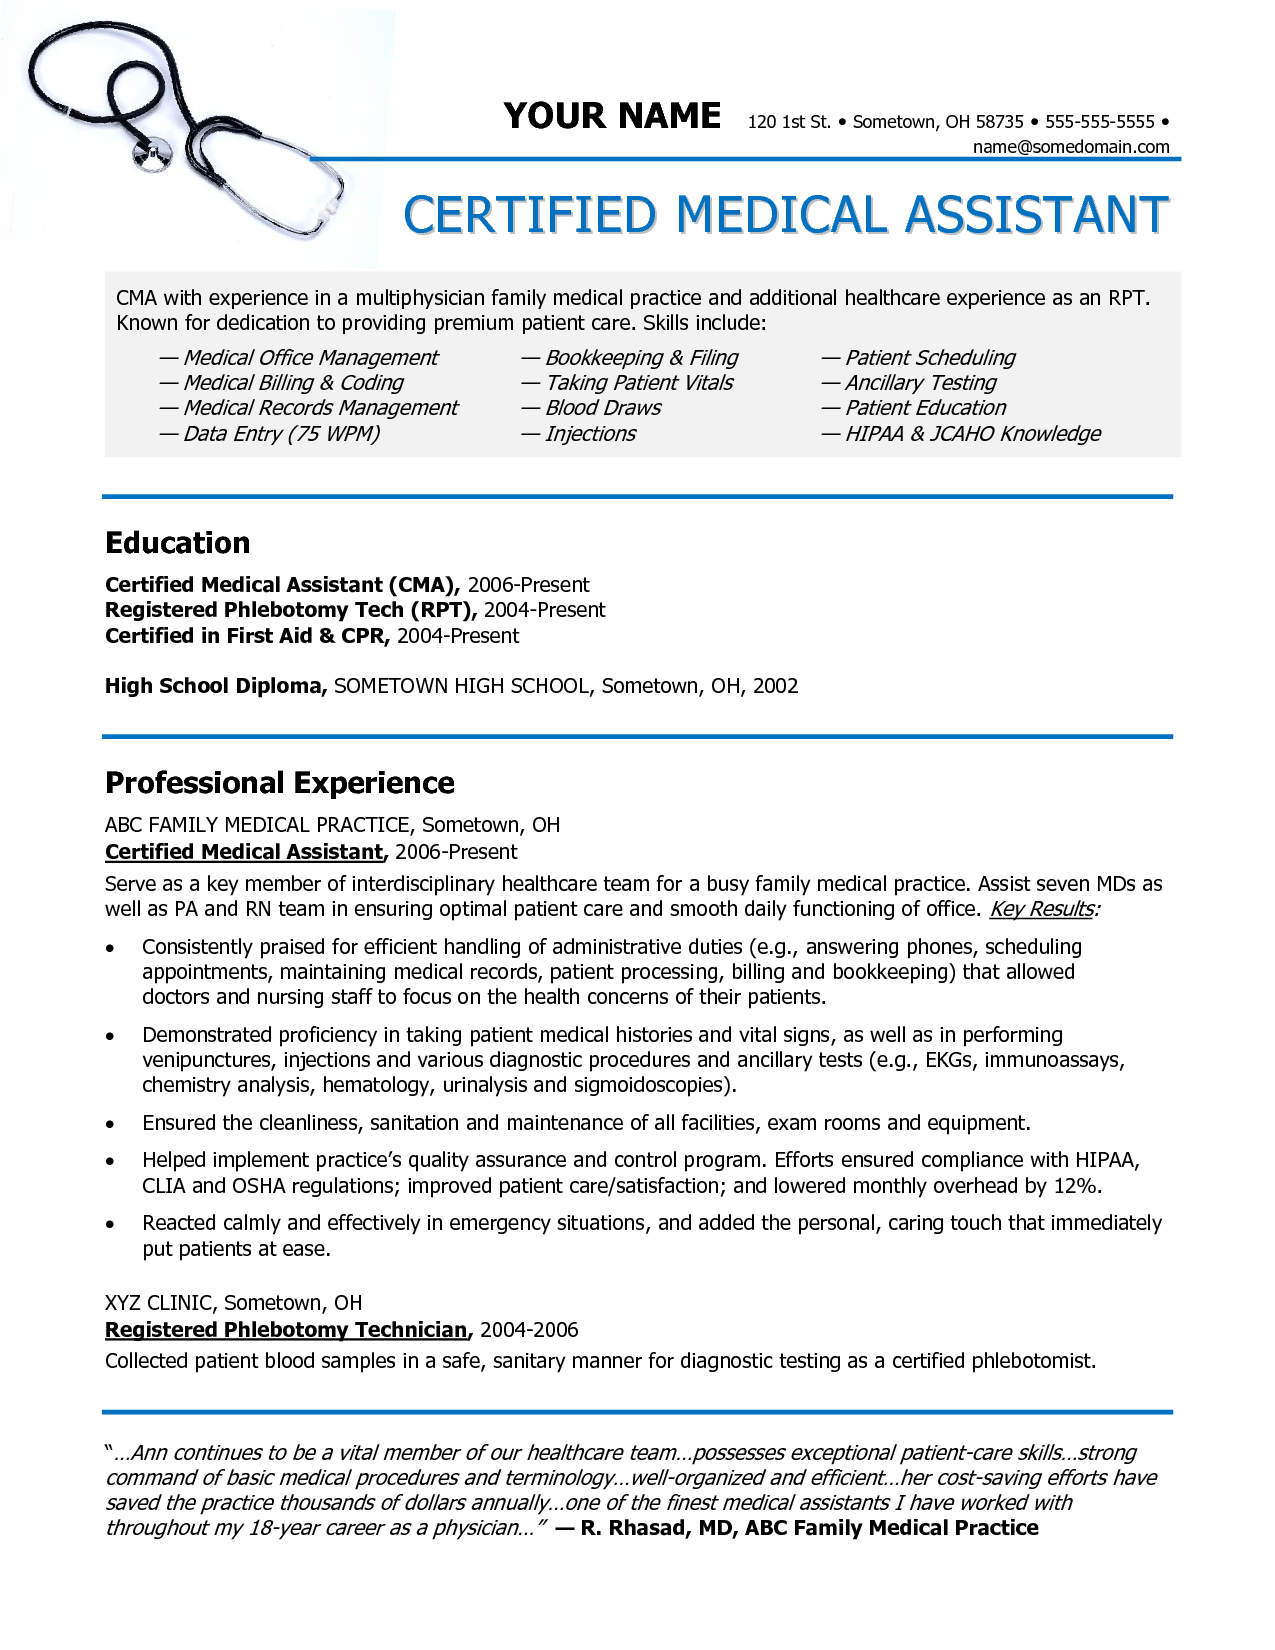 Resume Objective For Medical Billing Medical Assistant Resume Entry Level Examples 18 Medical